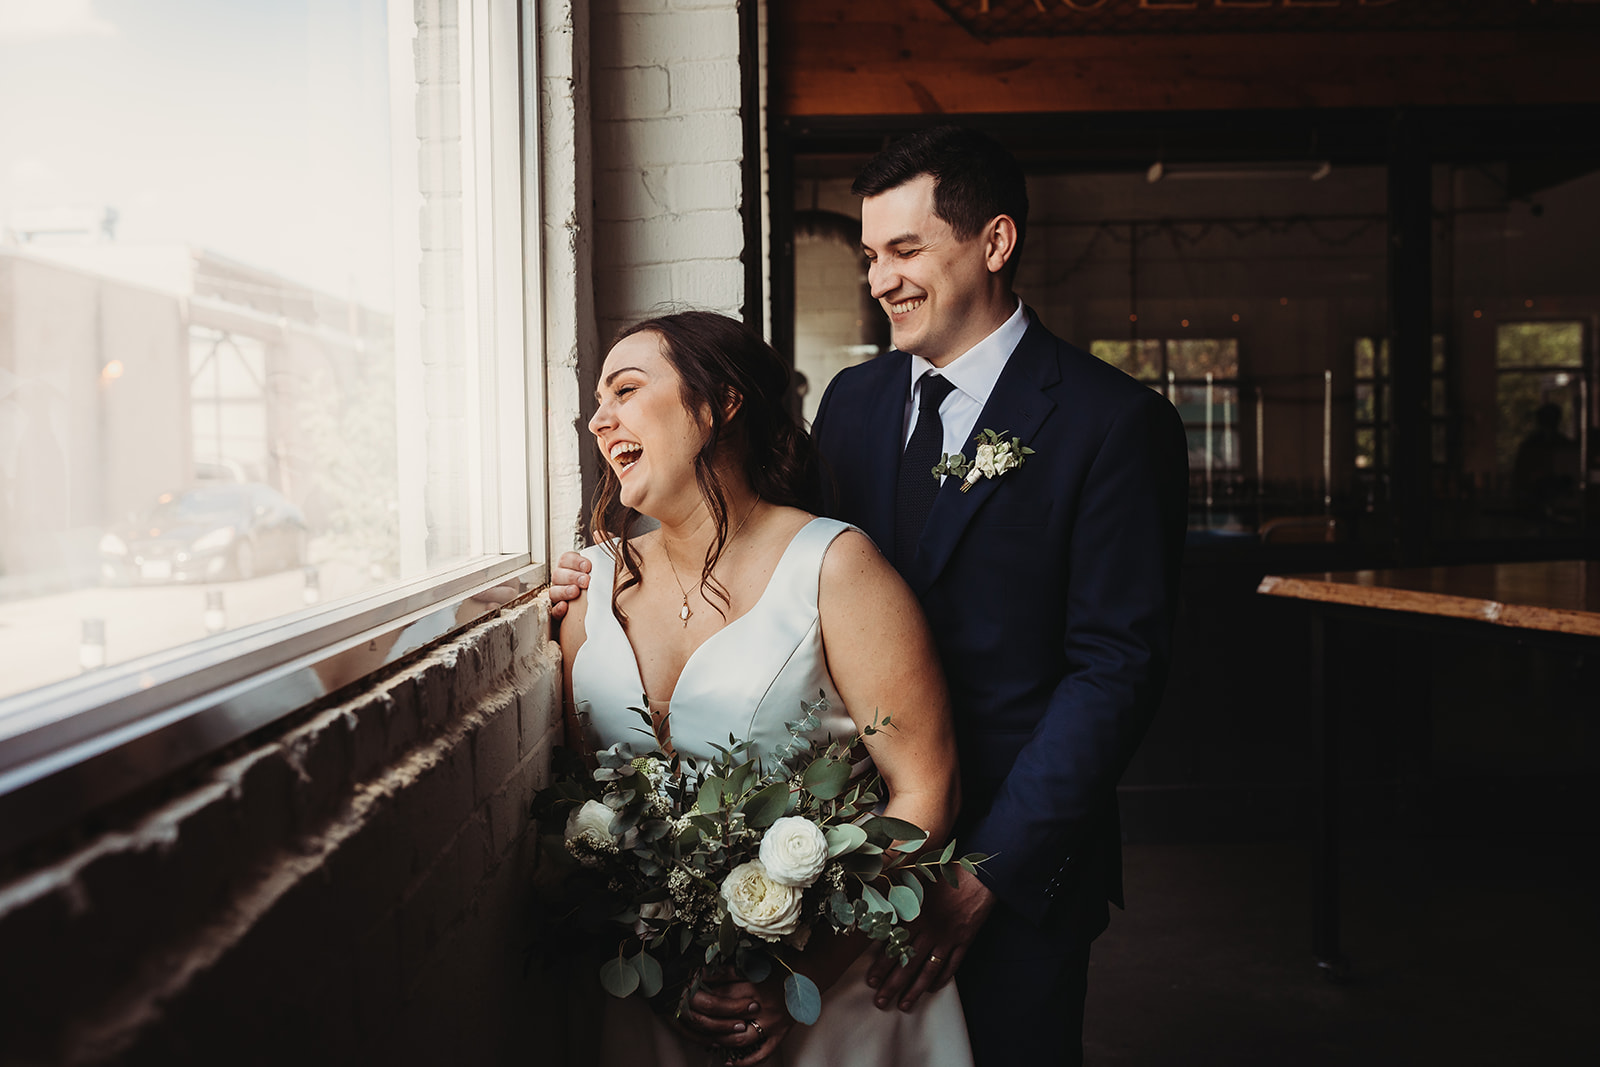 propeller coffee co wedding 584 websize - Durham Wedding Photographer